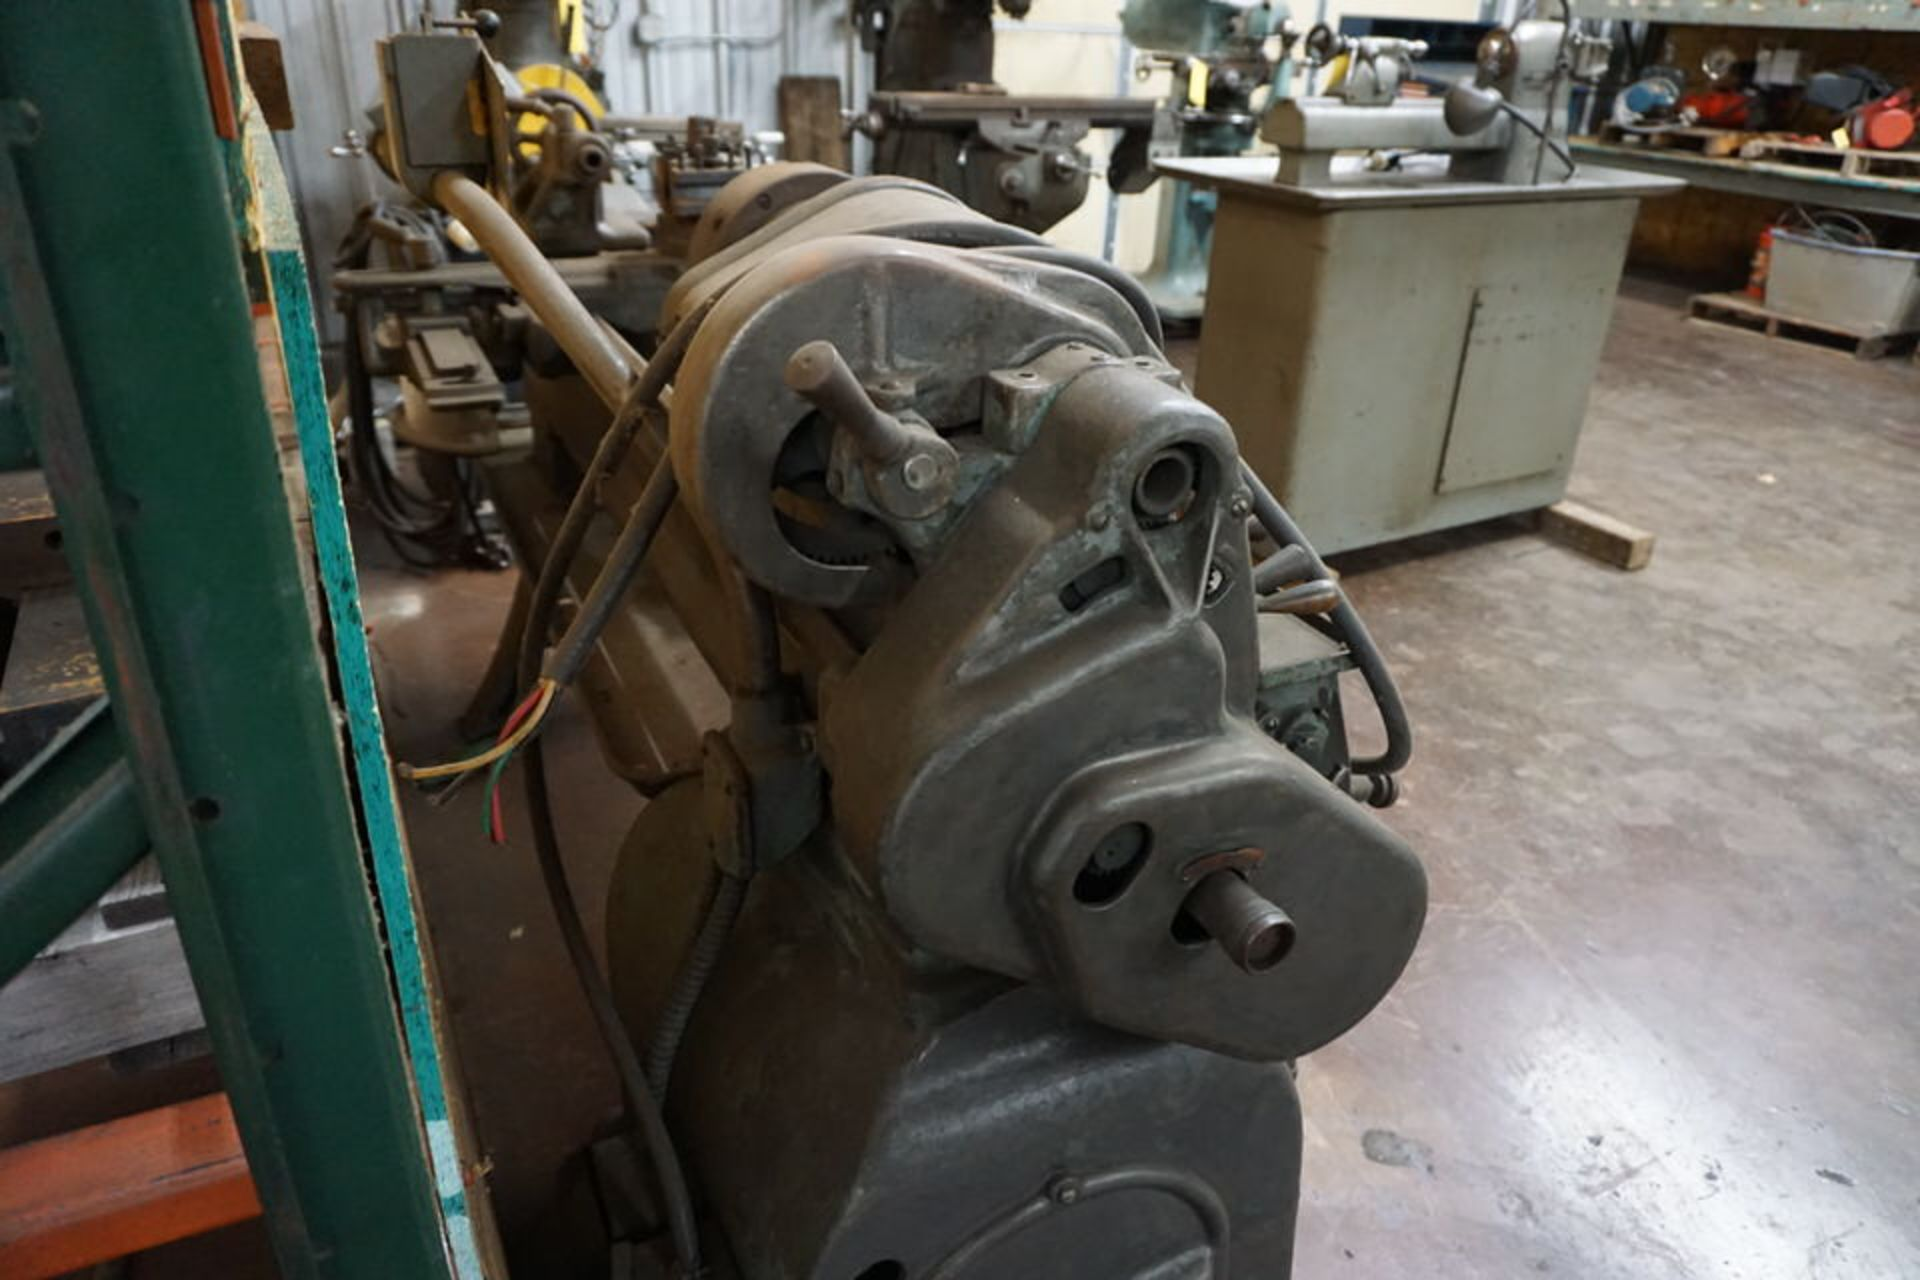 SOUTH BEND MANUAL LATHE W/ 3 JAW CHUCK, TOOPOST & TAILSTOCK - Image 5 of 5